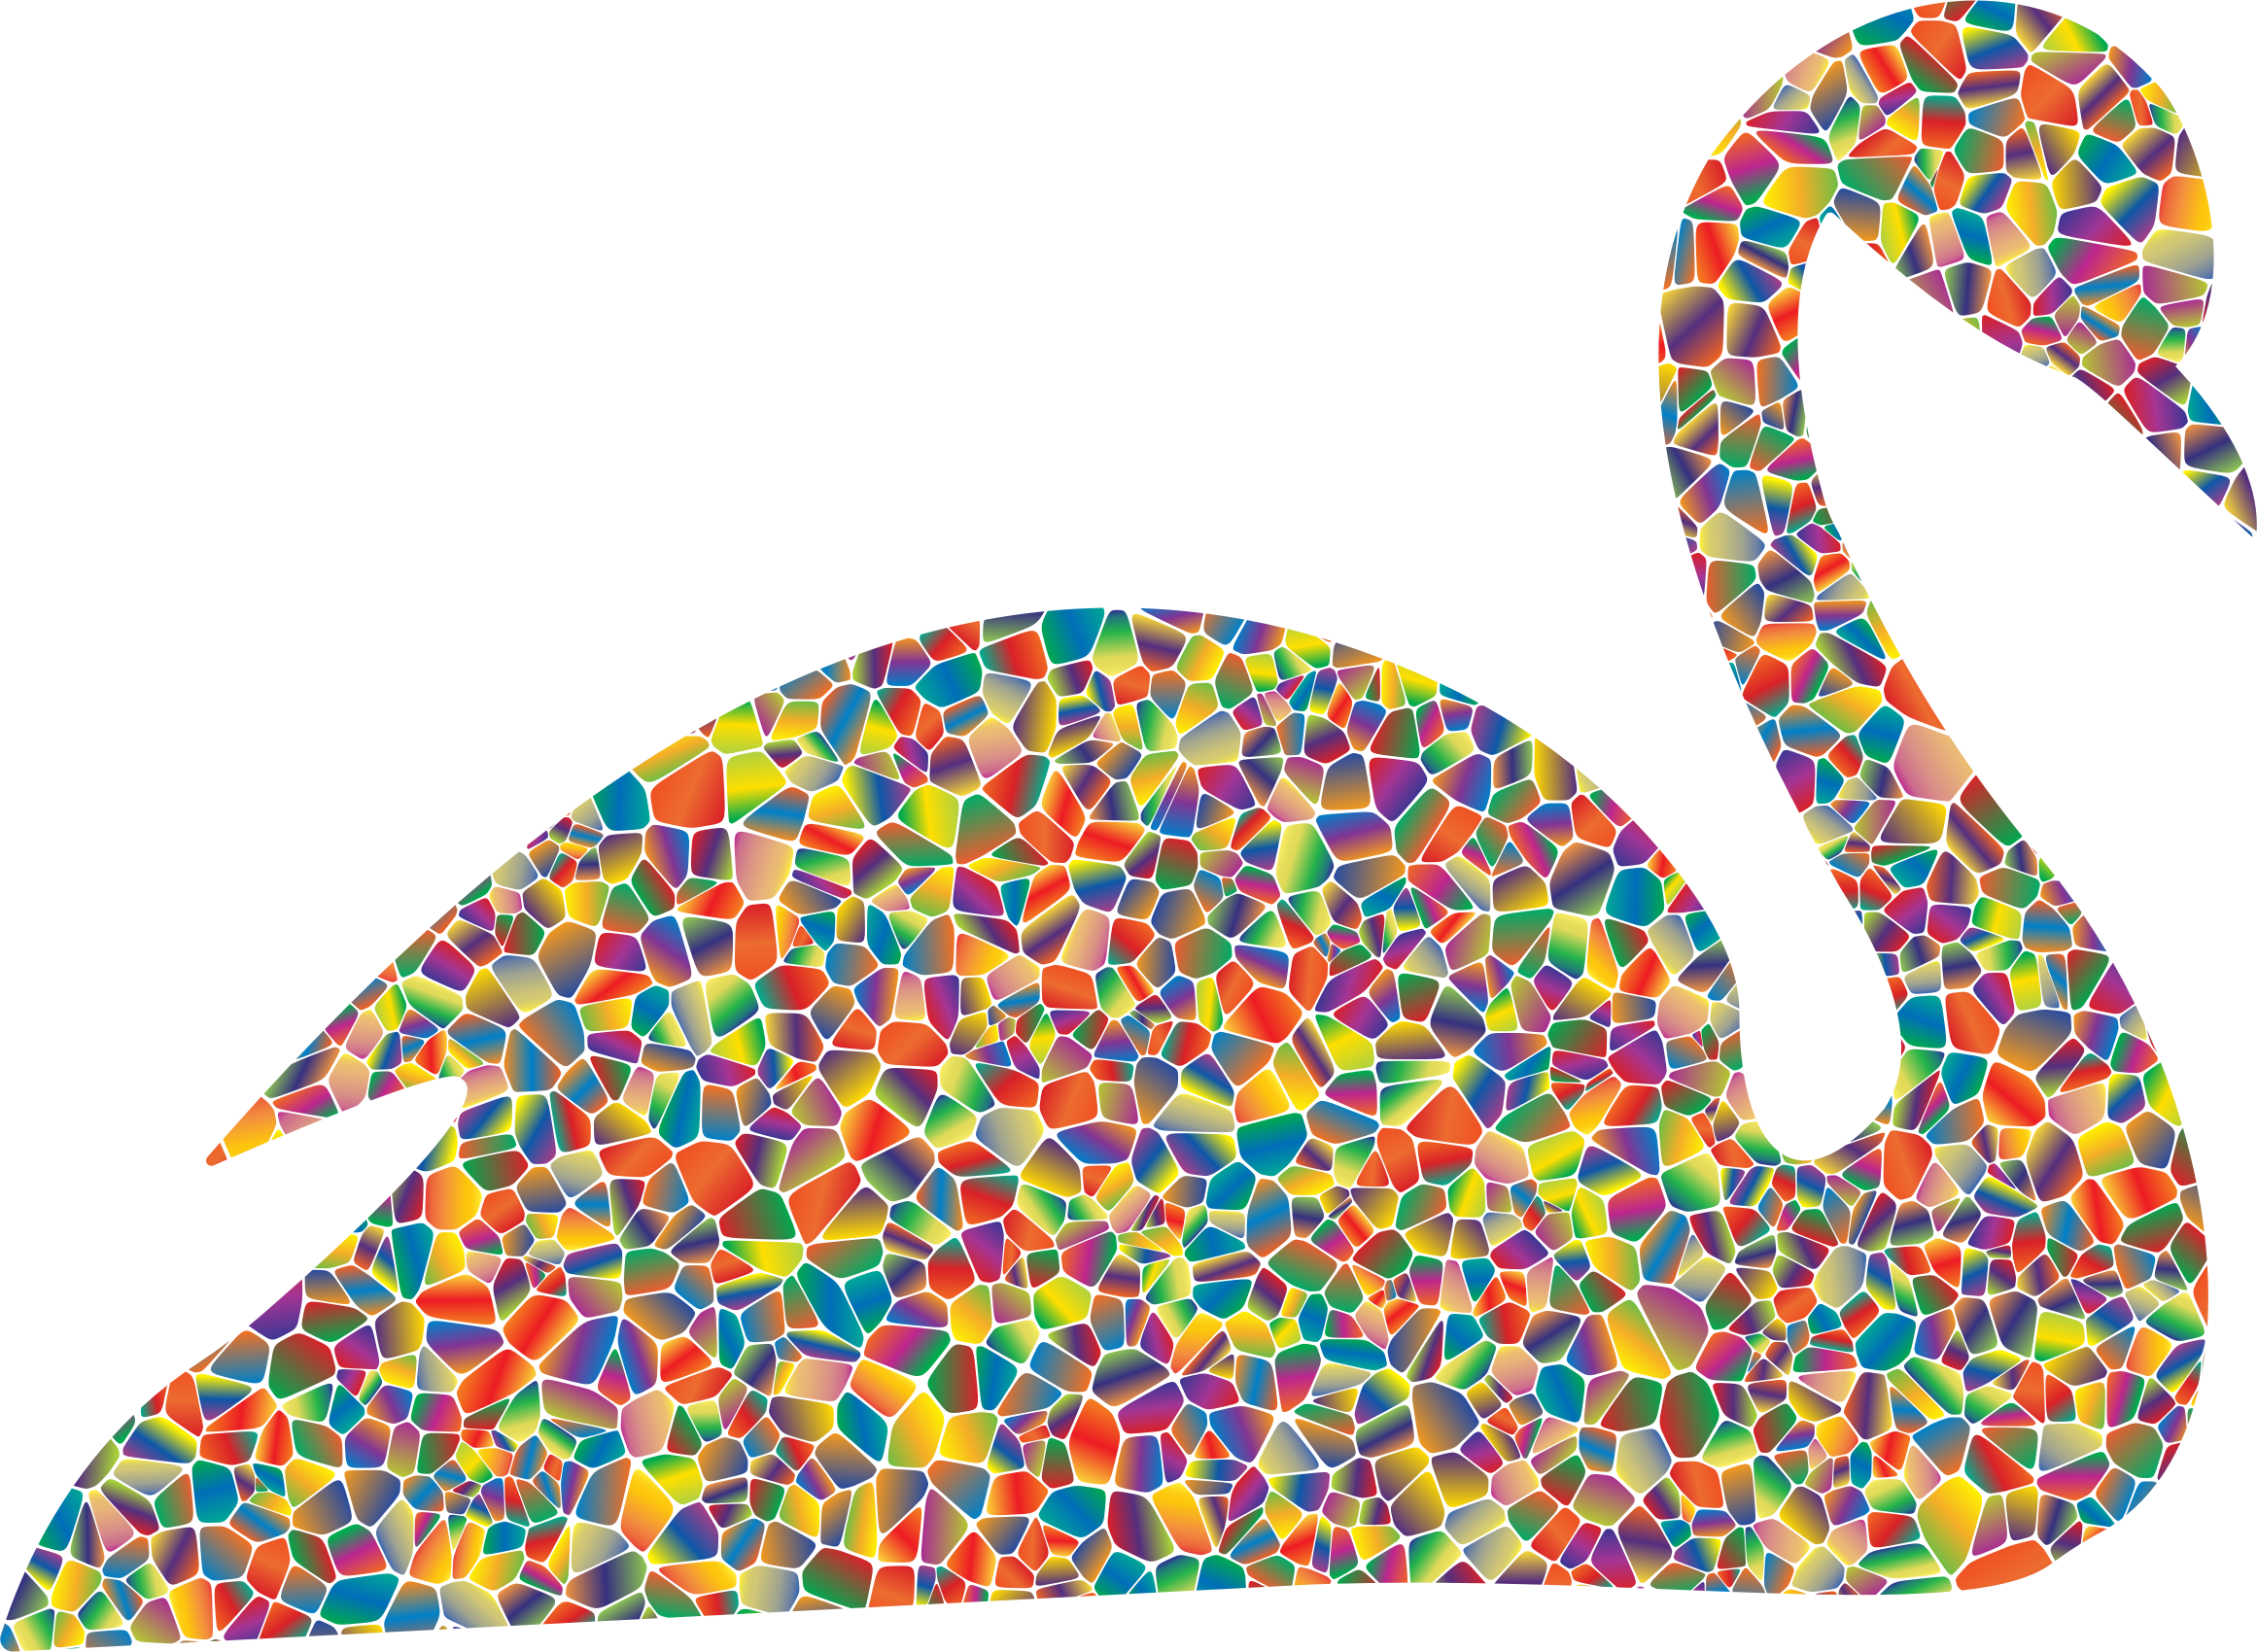 Polyprismatic Tiled Swan by GDJ